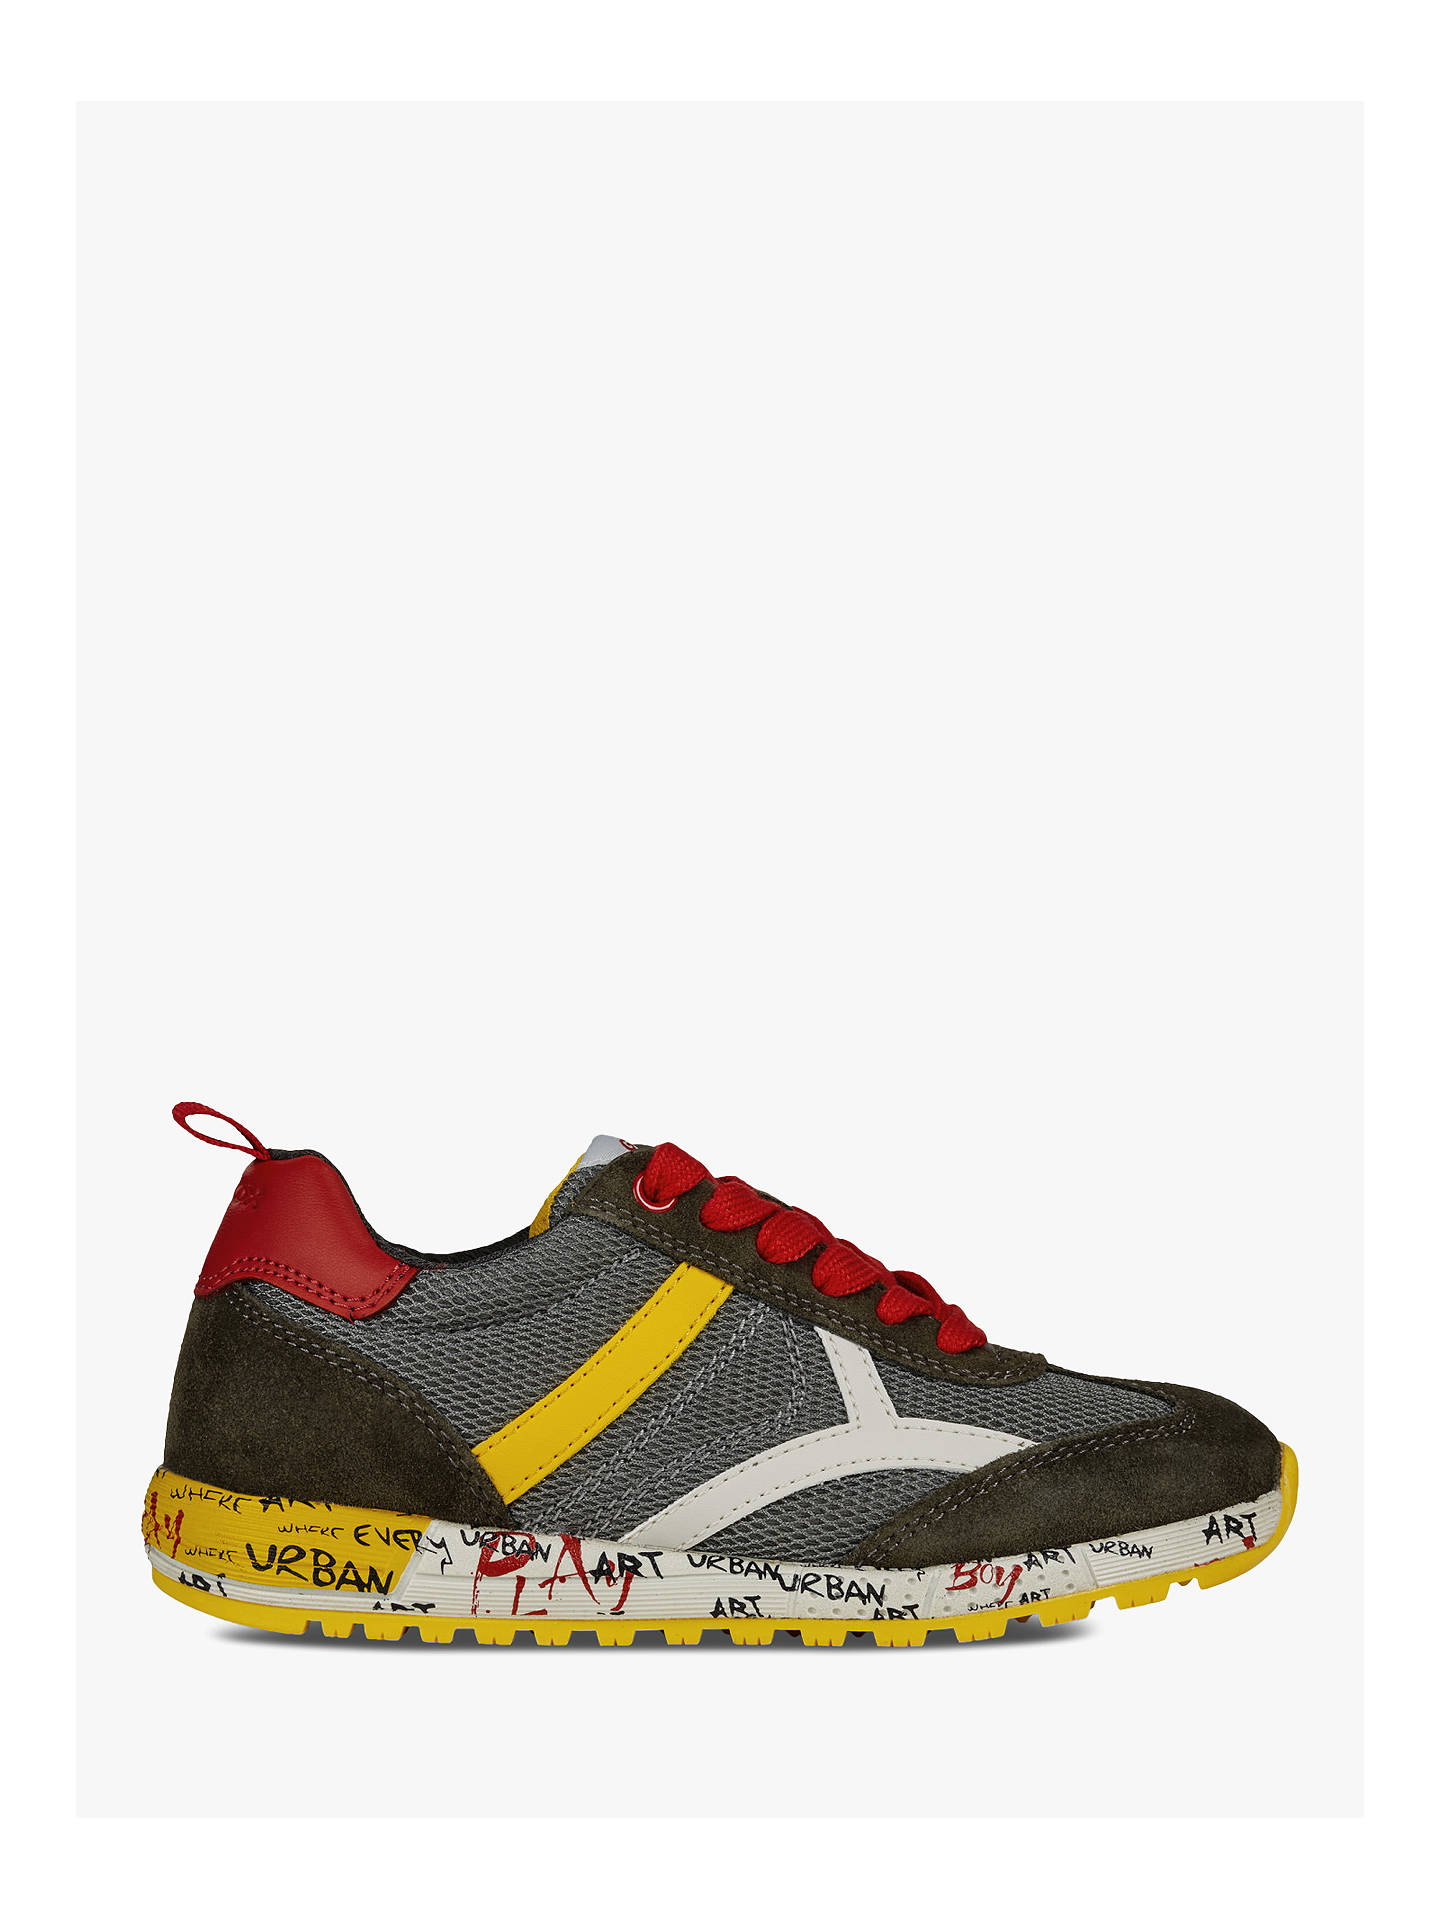 new style 70e85 dab88 Geox Children's Alben B Shoes at John Lewis & Partners